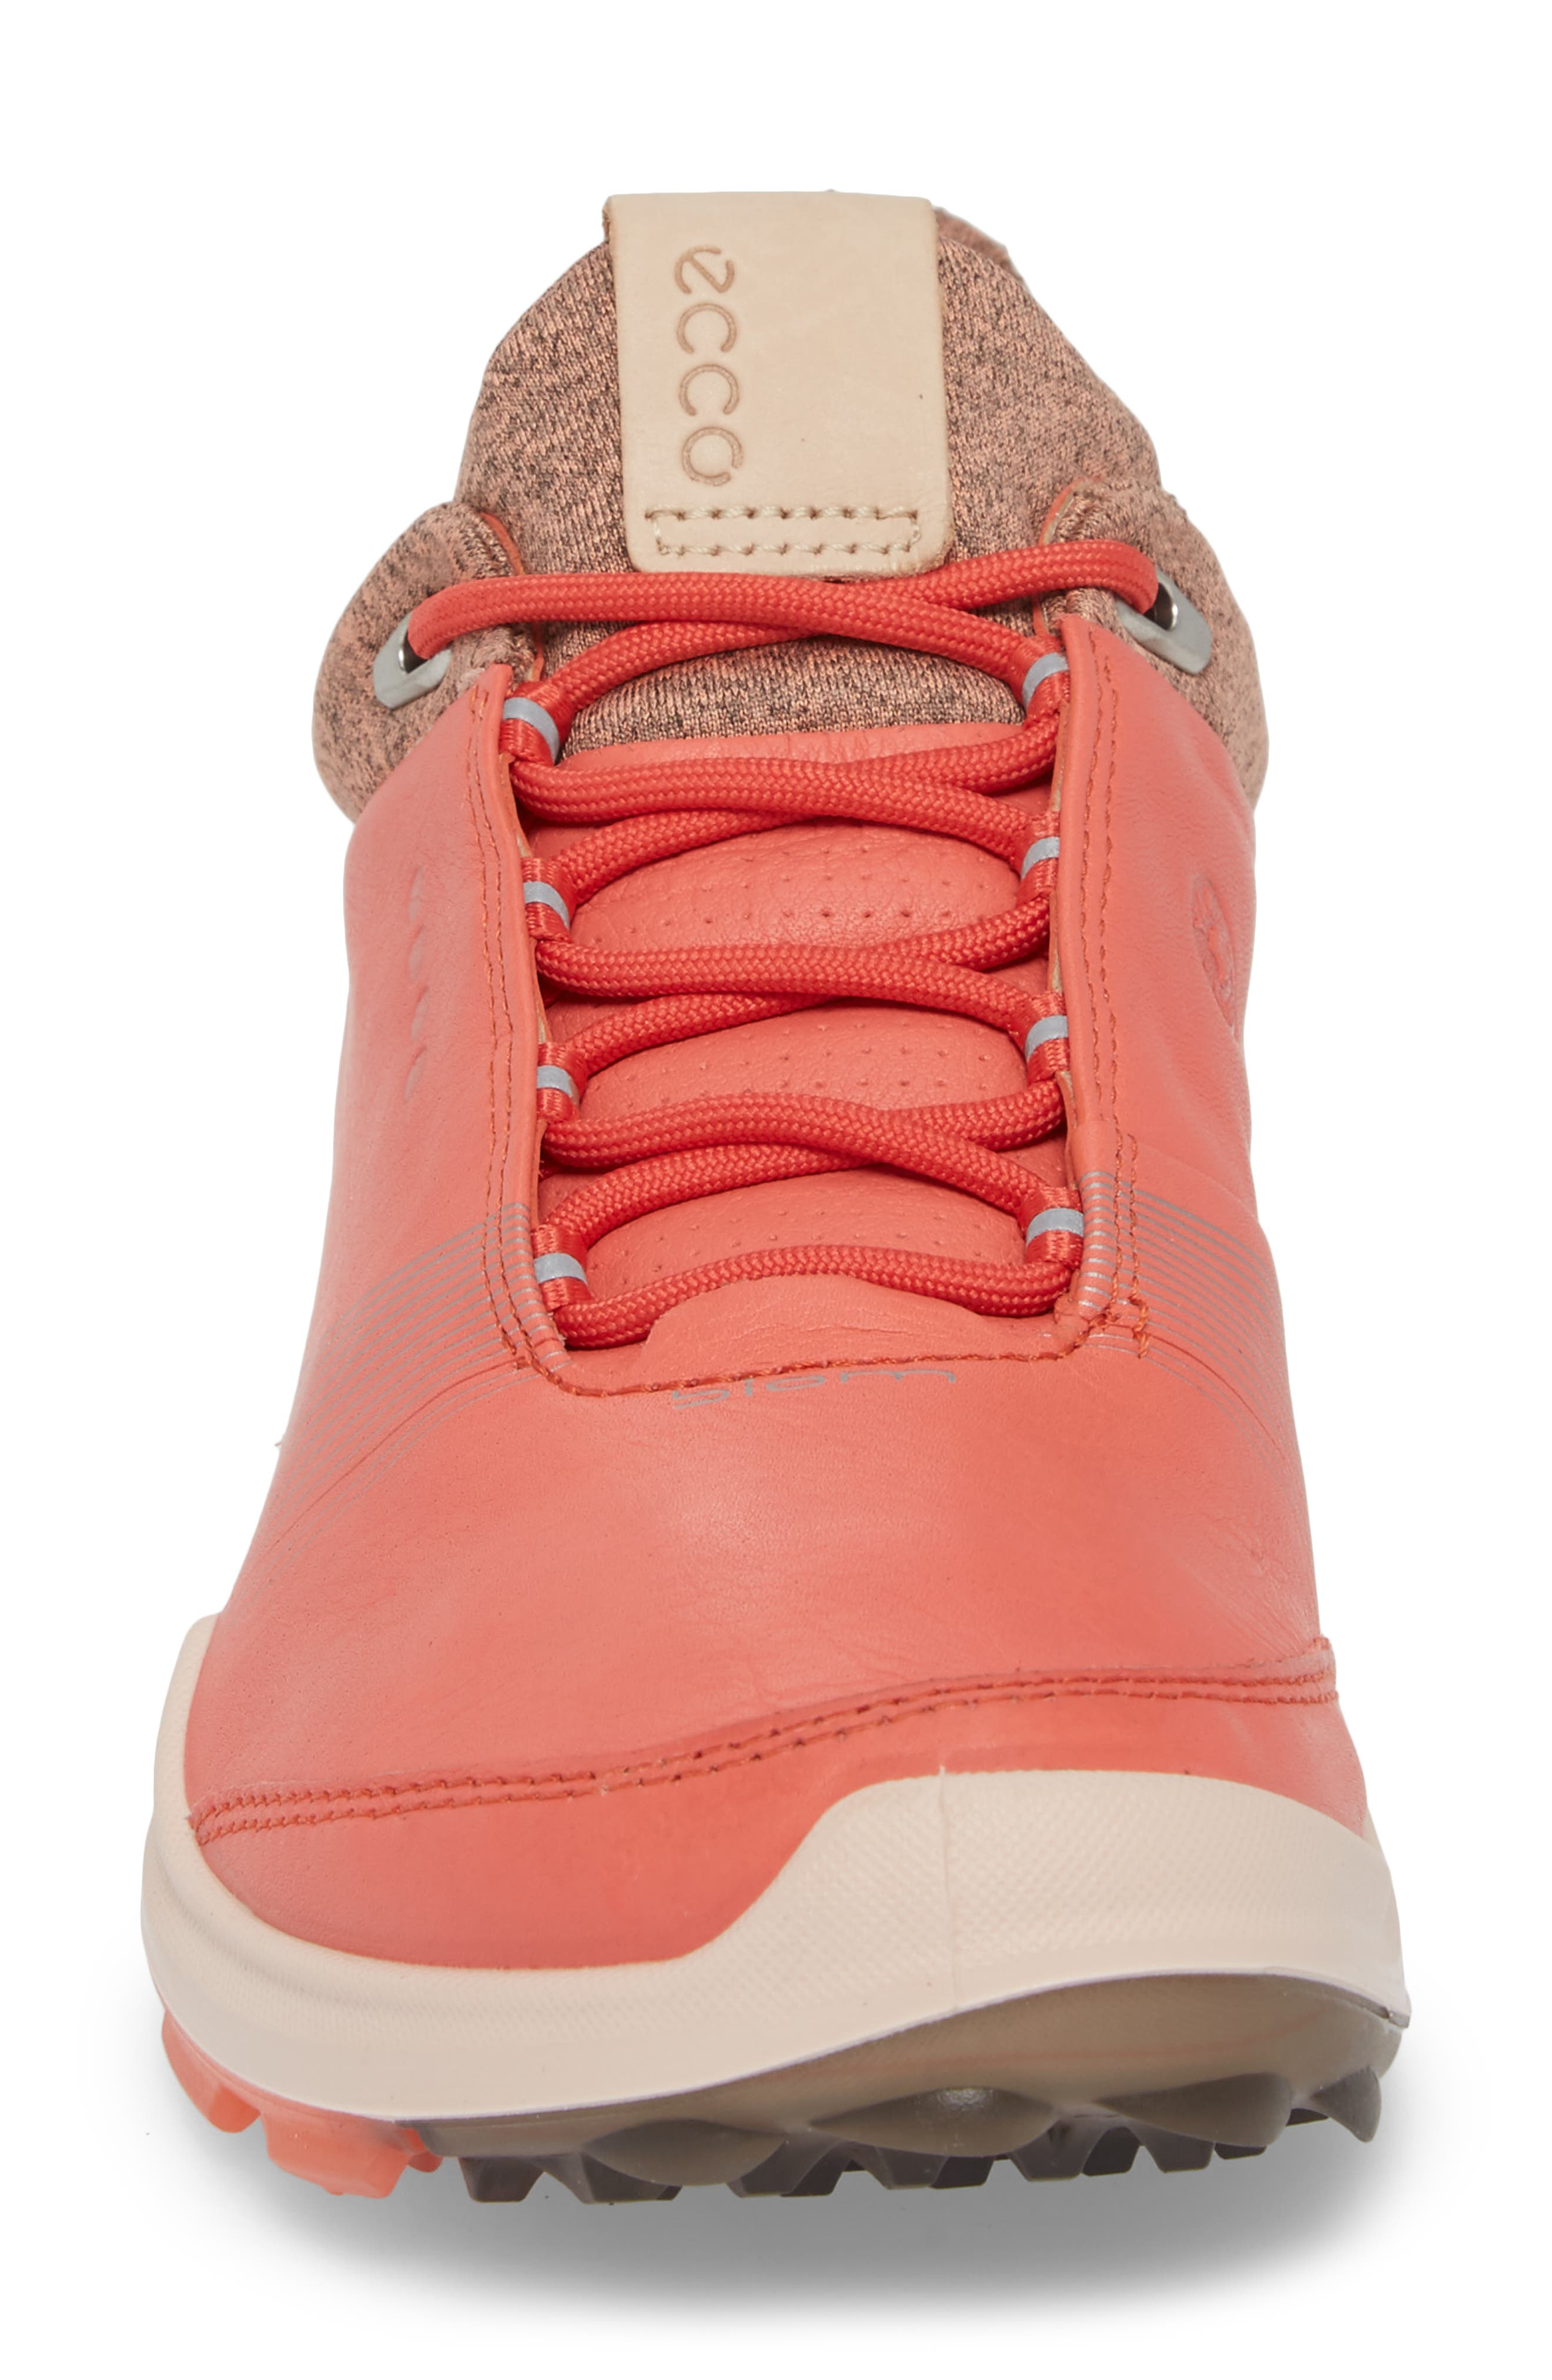 BIOM 2 Hybrid Gore-Tex<sup>®</sup> Golf Shoe,                             Alternate thumbnail 4, color,                             Spiced Coral Leather